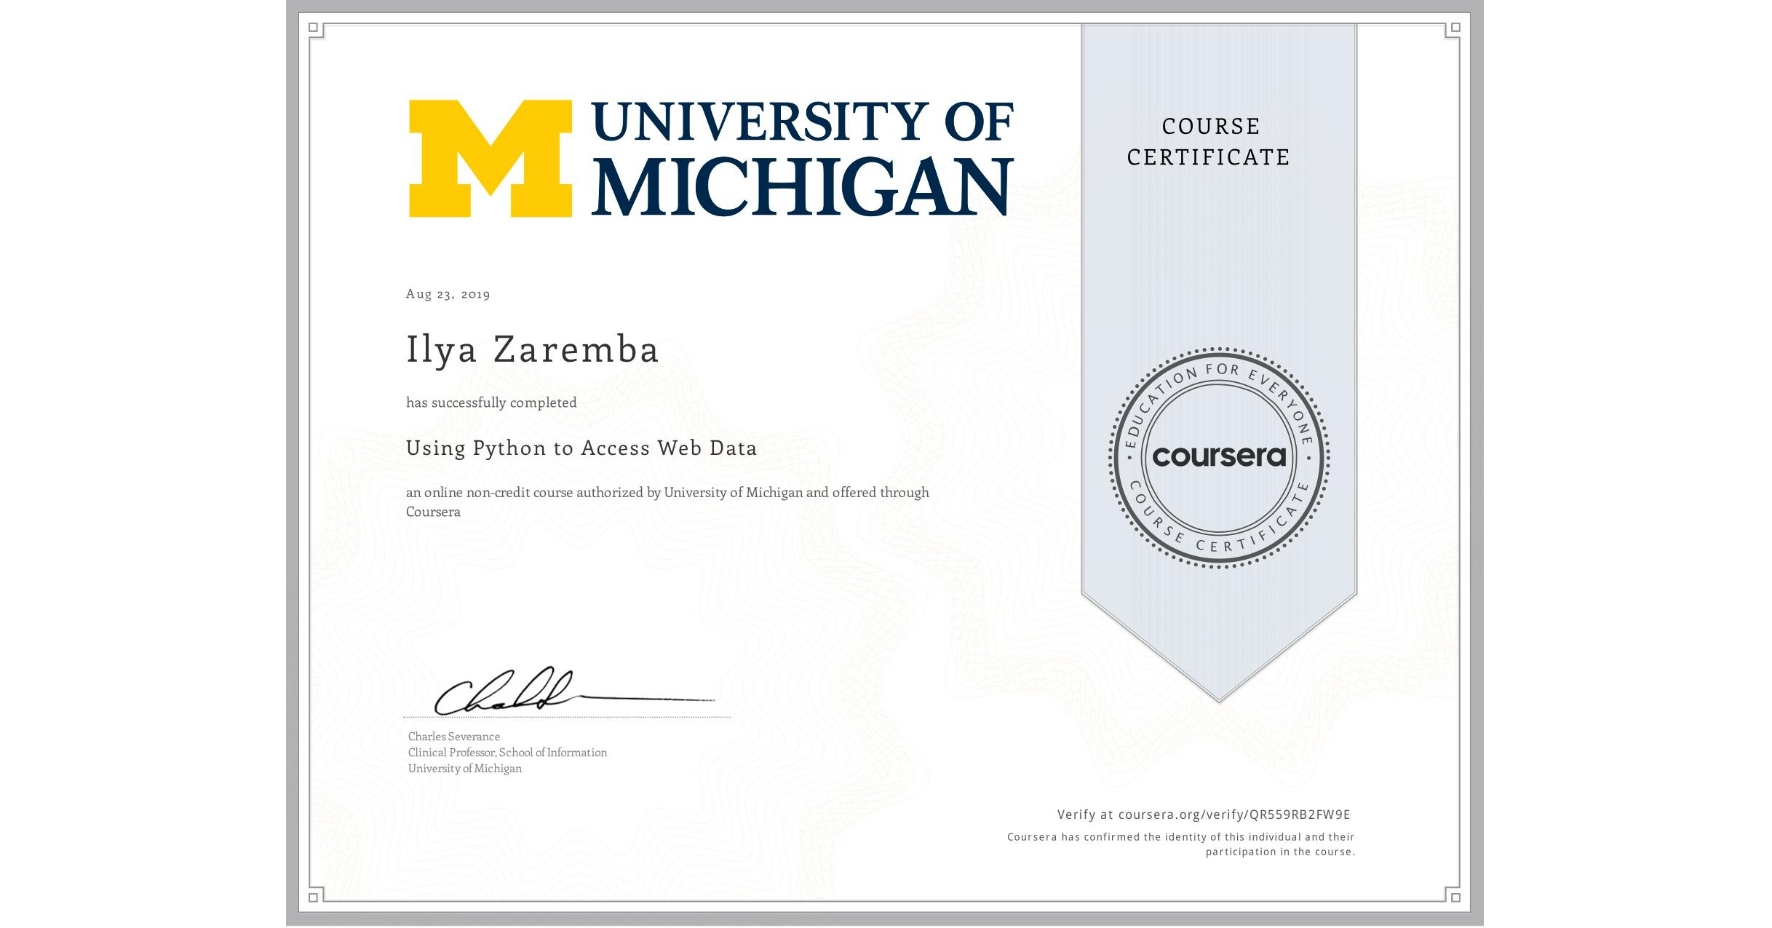 View certificate for Ilya Zaremba, Using Python to Access Web Data, an online non-credit course authorized by University of Michigan and offered through Coursera